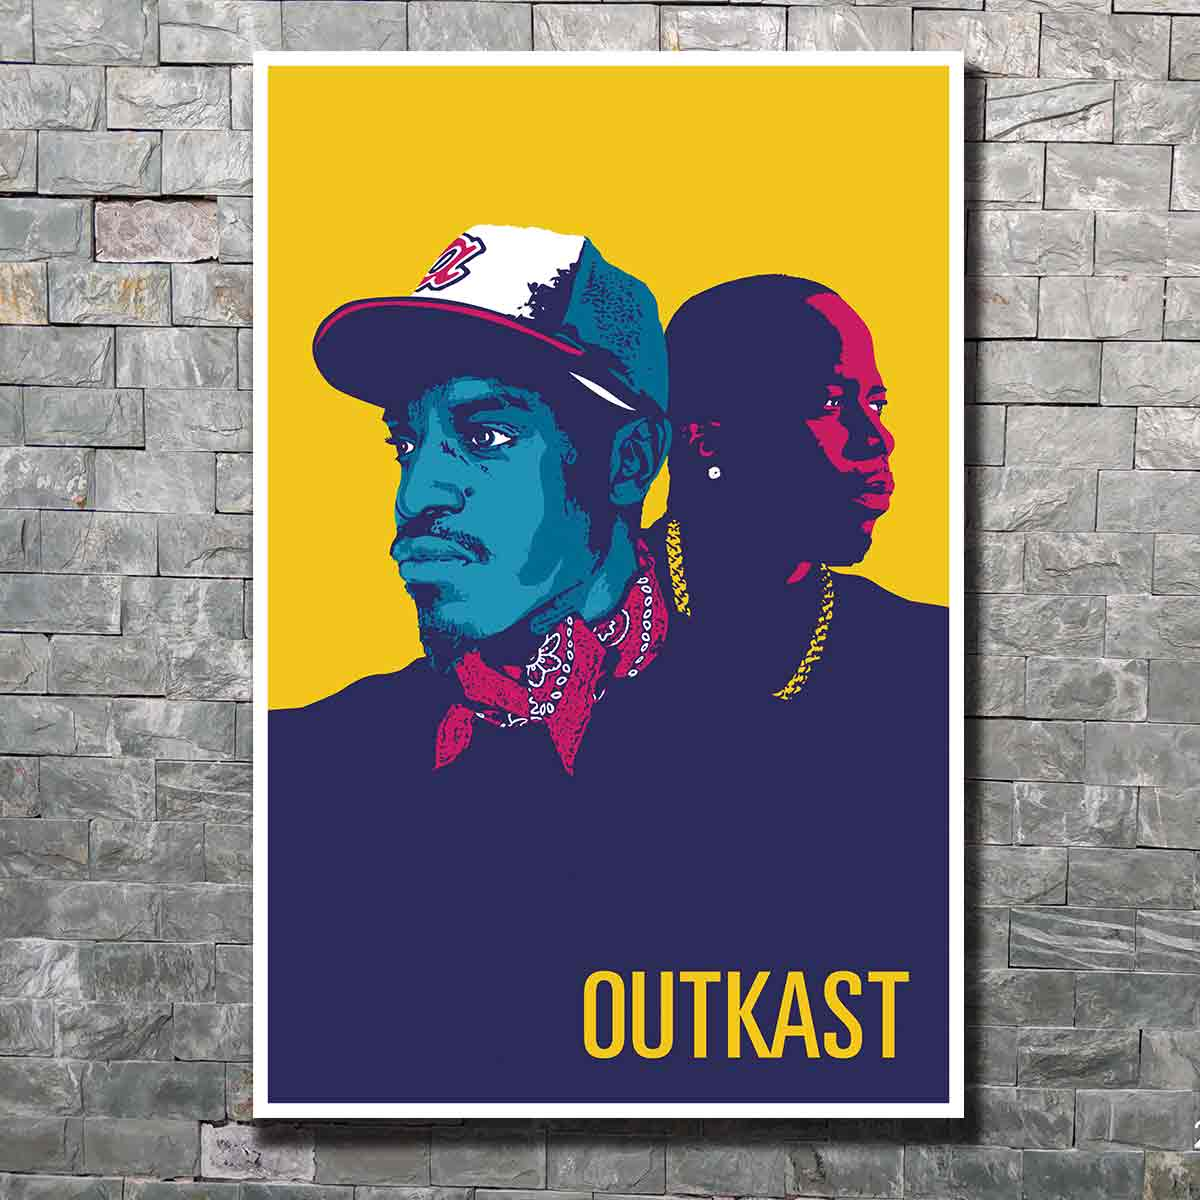 Outkast Stankonia Hip Hop Duo Album Music Rap Singer Art Poster custom Home Wall decor12x18 24x36canvas living roomdecoration image